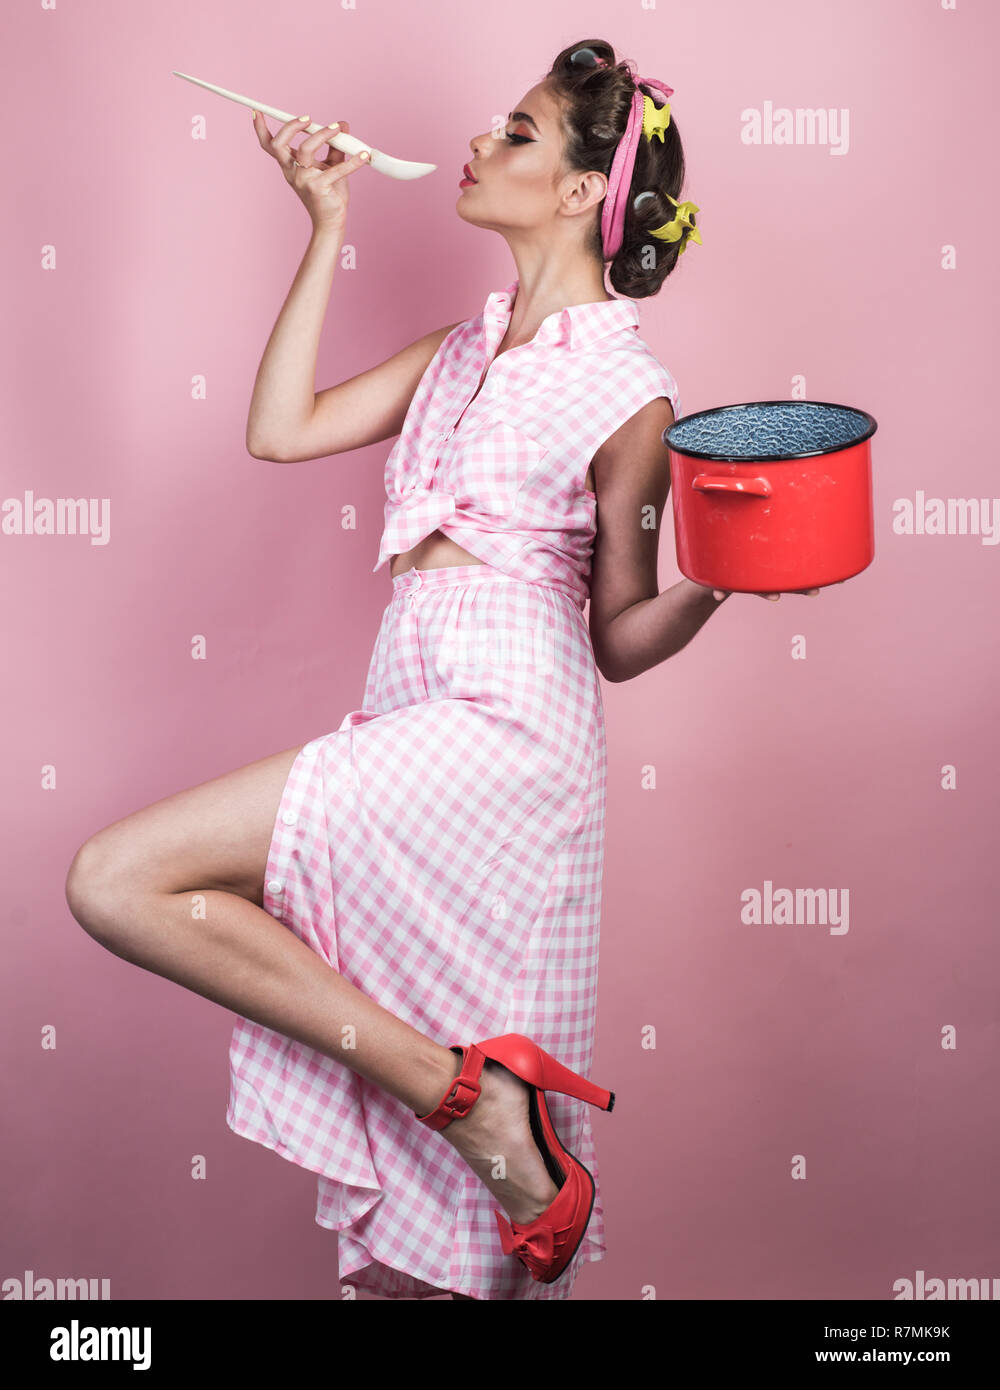 e71a58fd9bcd ... hair. pin up woman with trendy makeup. perfect housewife. retro woman  cooking in kitchen. pretty girl in vintage style. Enjoying healthy lifestyle